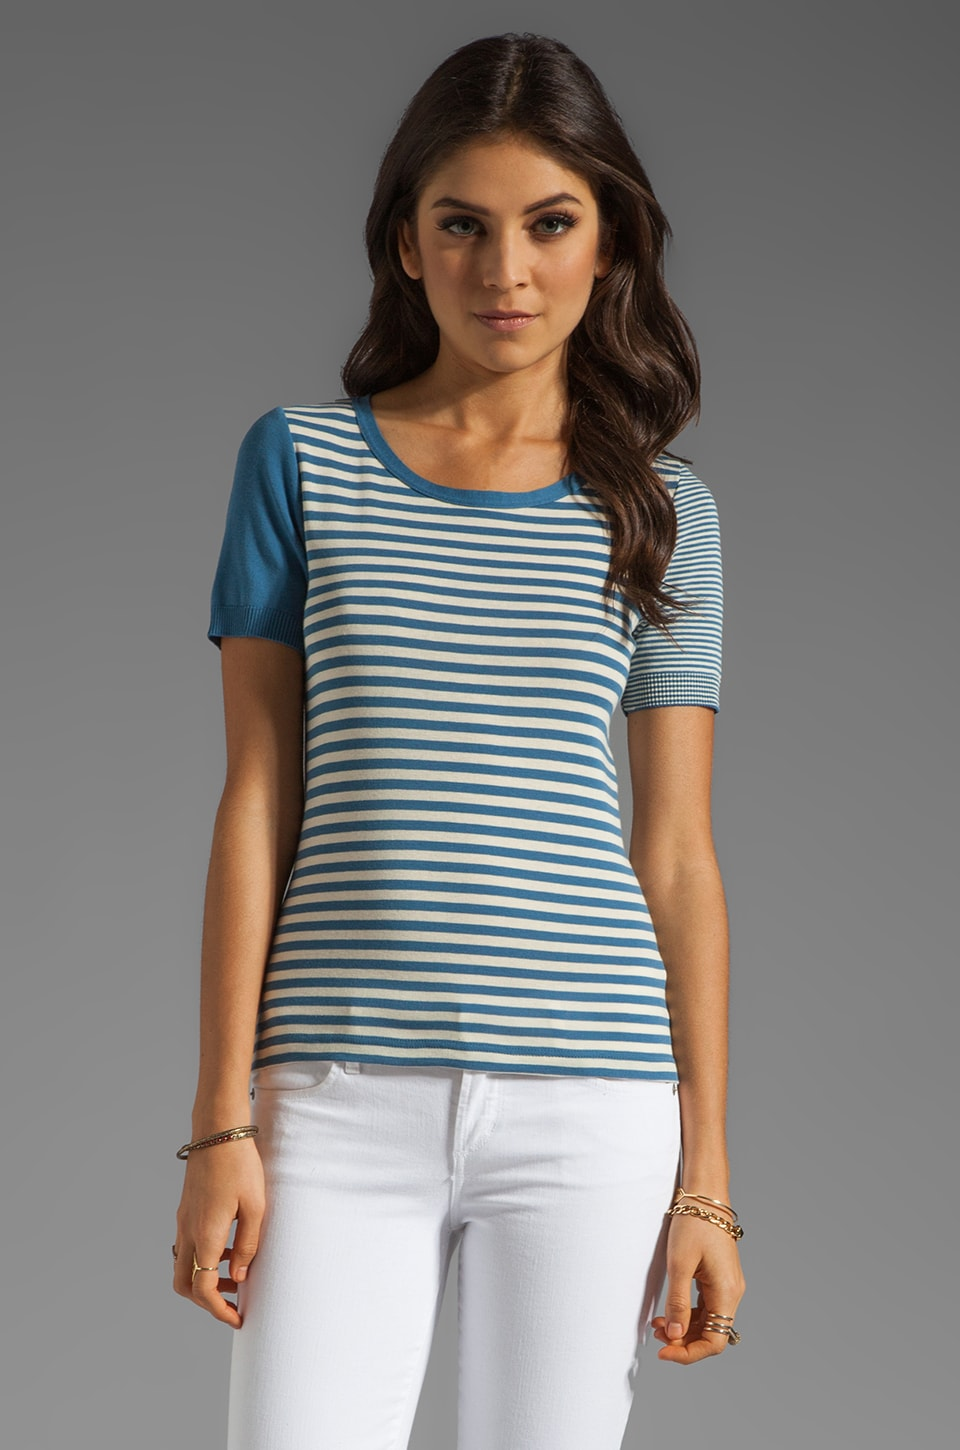 SONIA by Sonia Rykiel Short Sleeve Stripe Top in Lily/Denim